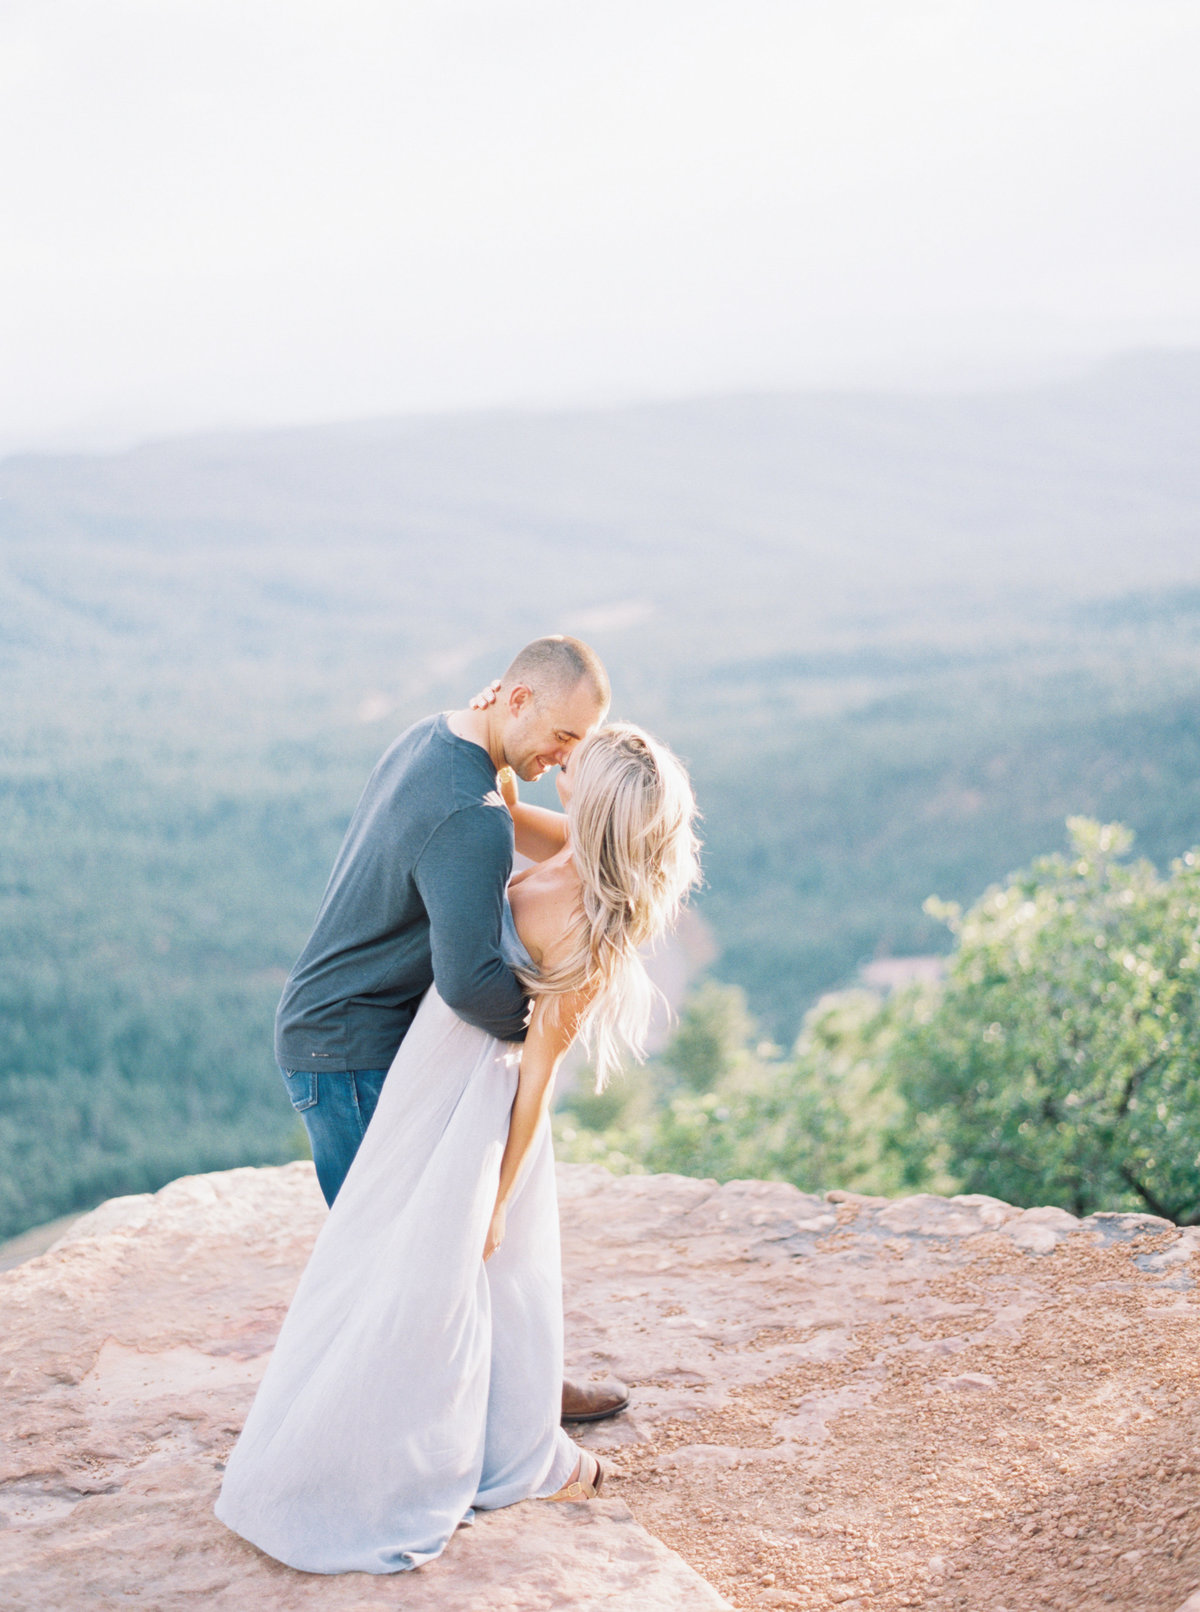 Arizona Engagement Session - Mary Claire Photography-21